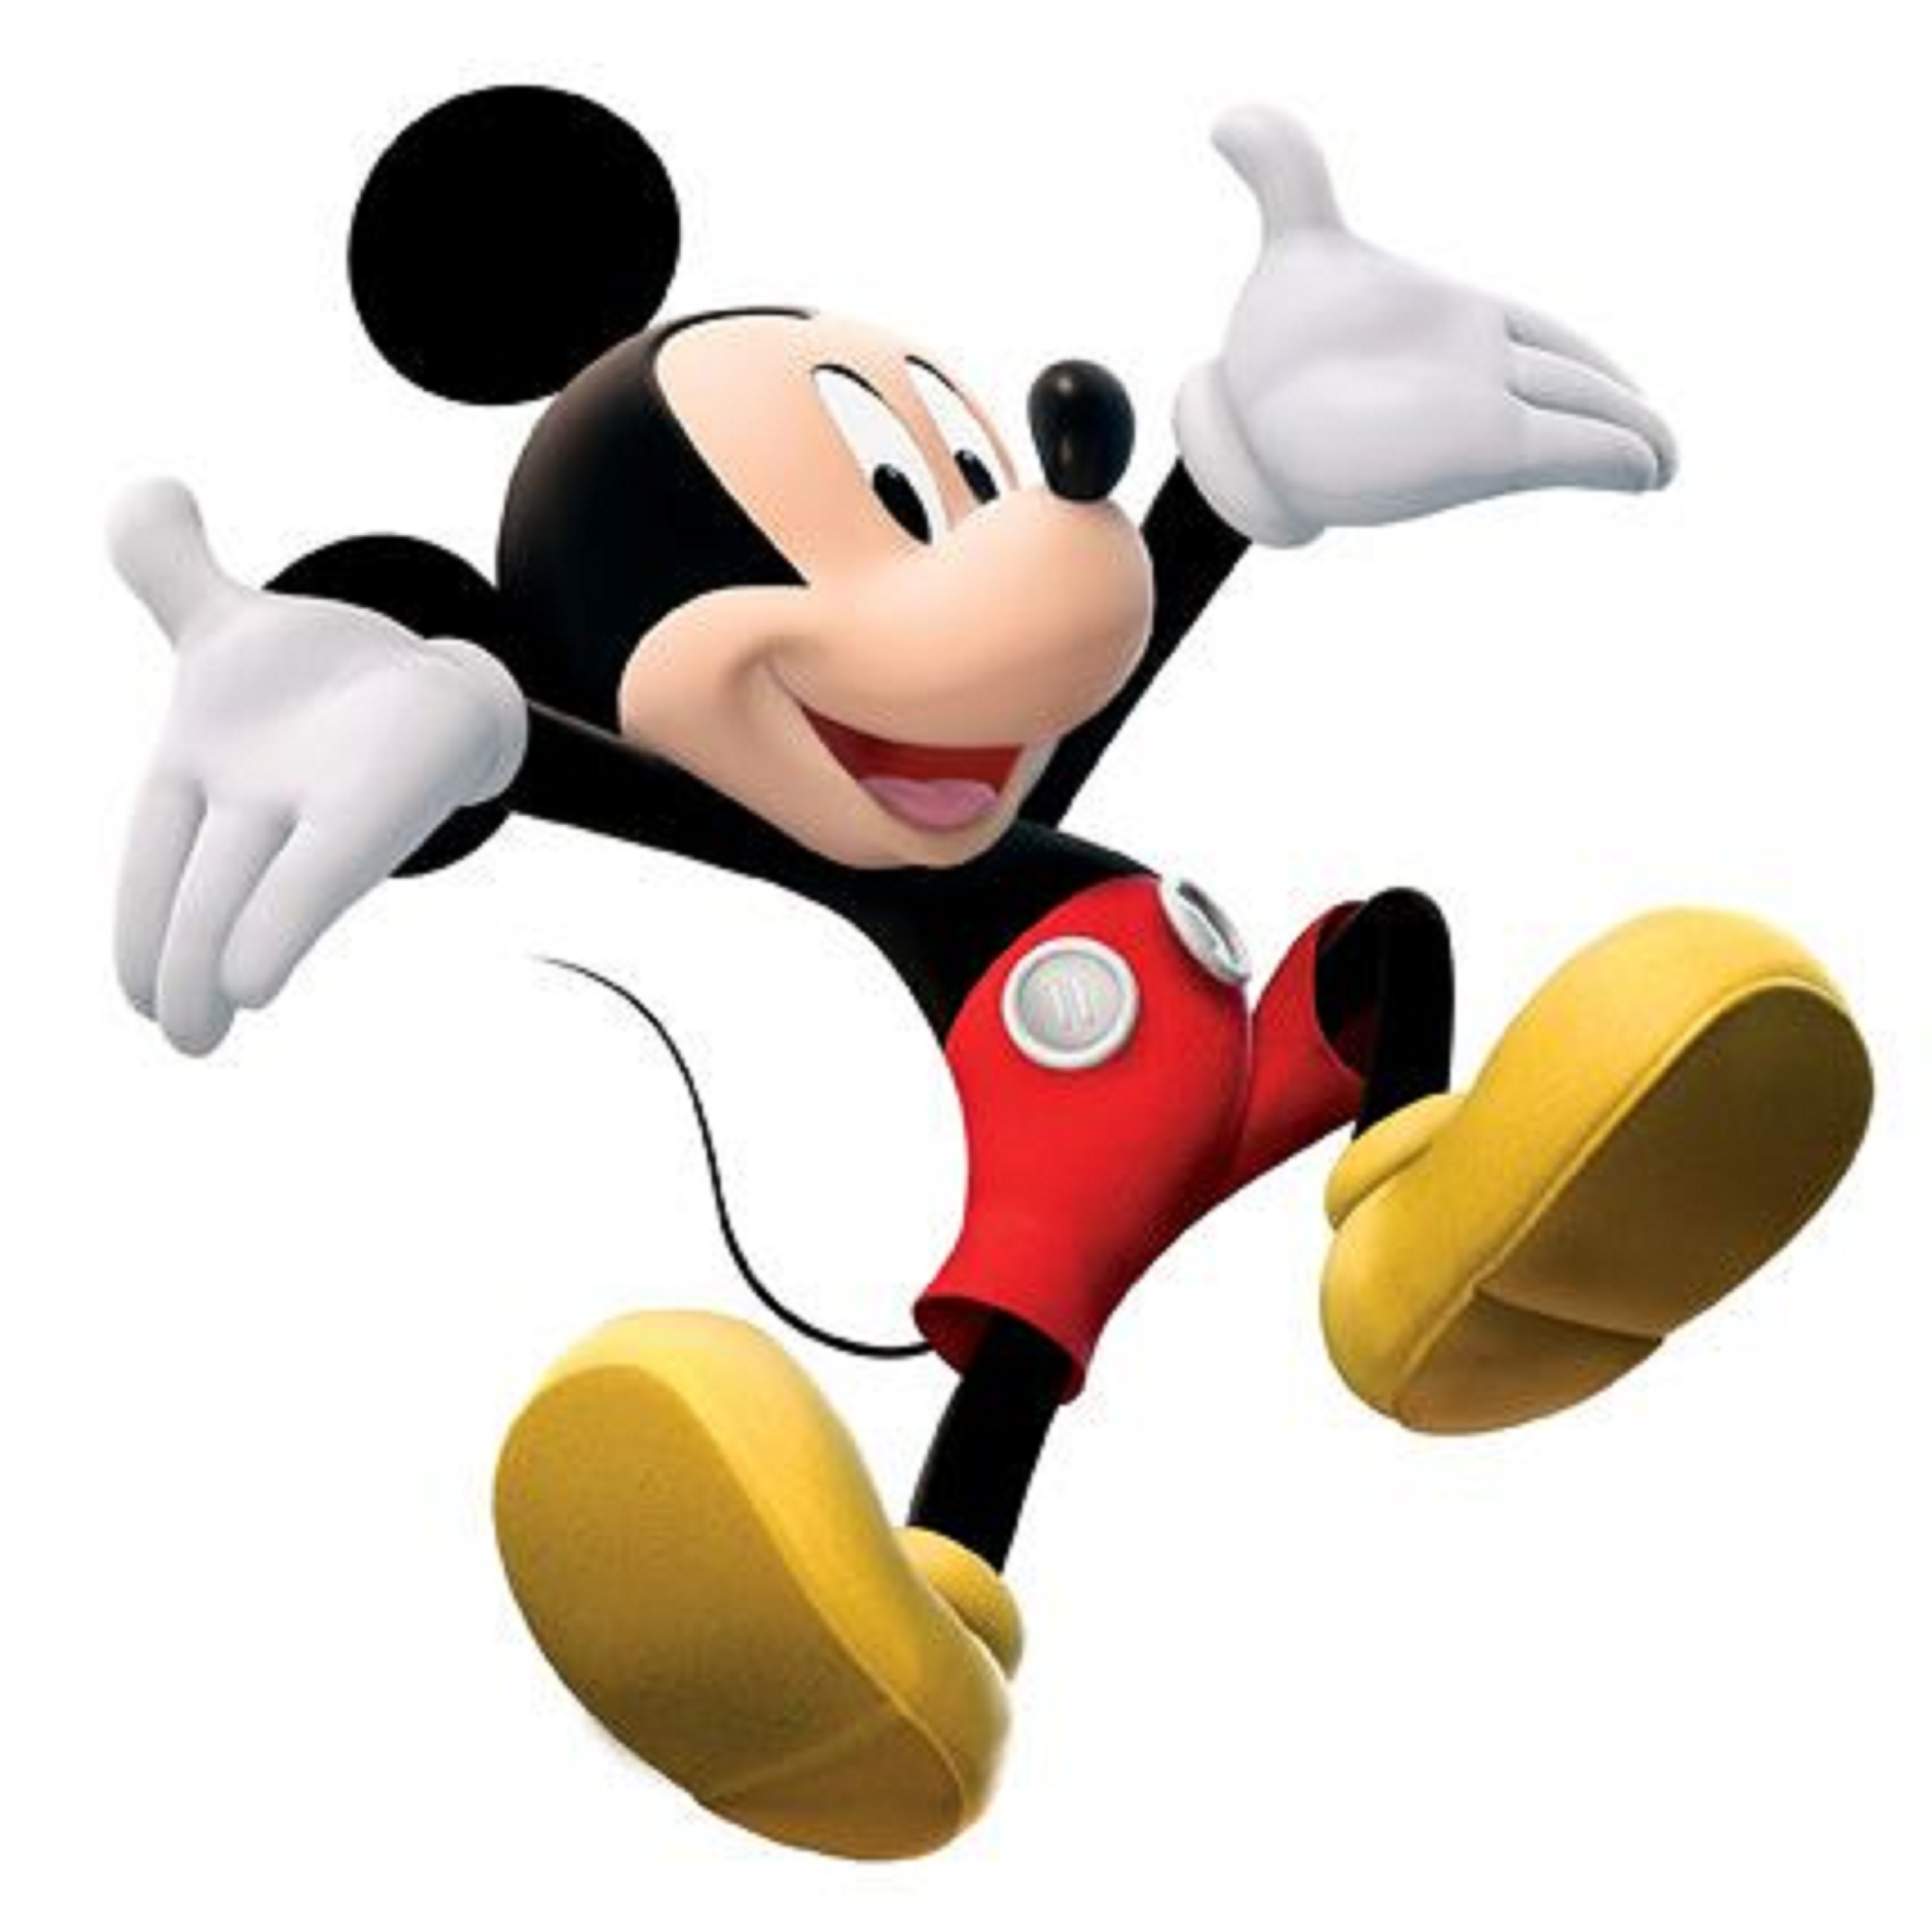 2145x2145 59 Mickey Clipart Clipart Fans